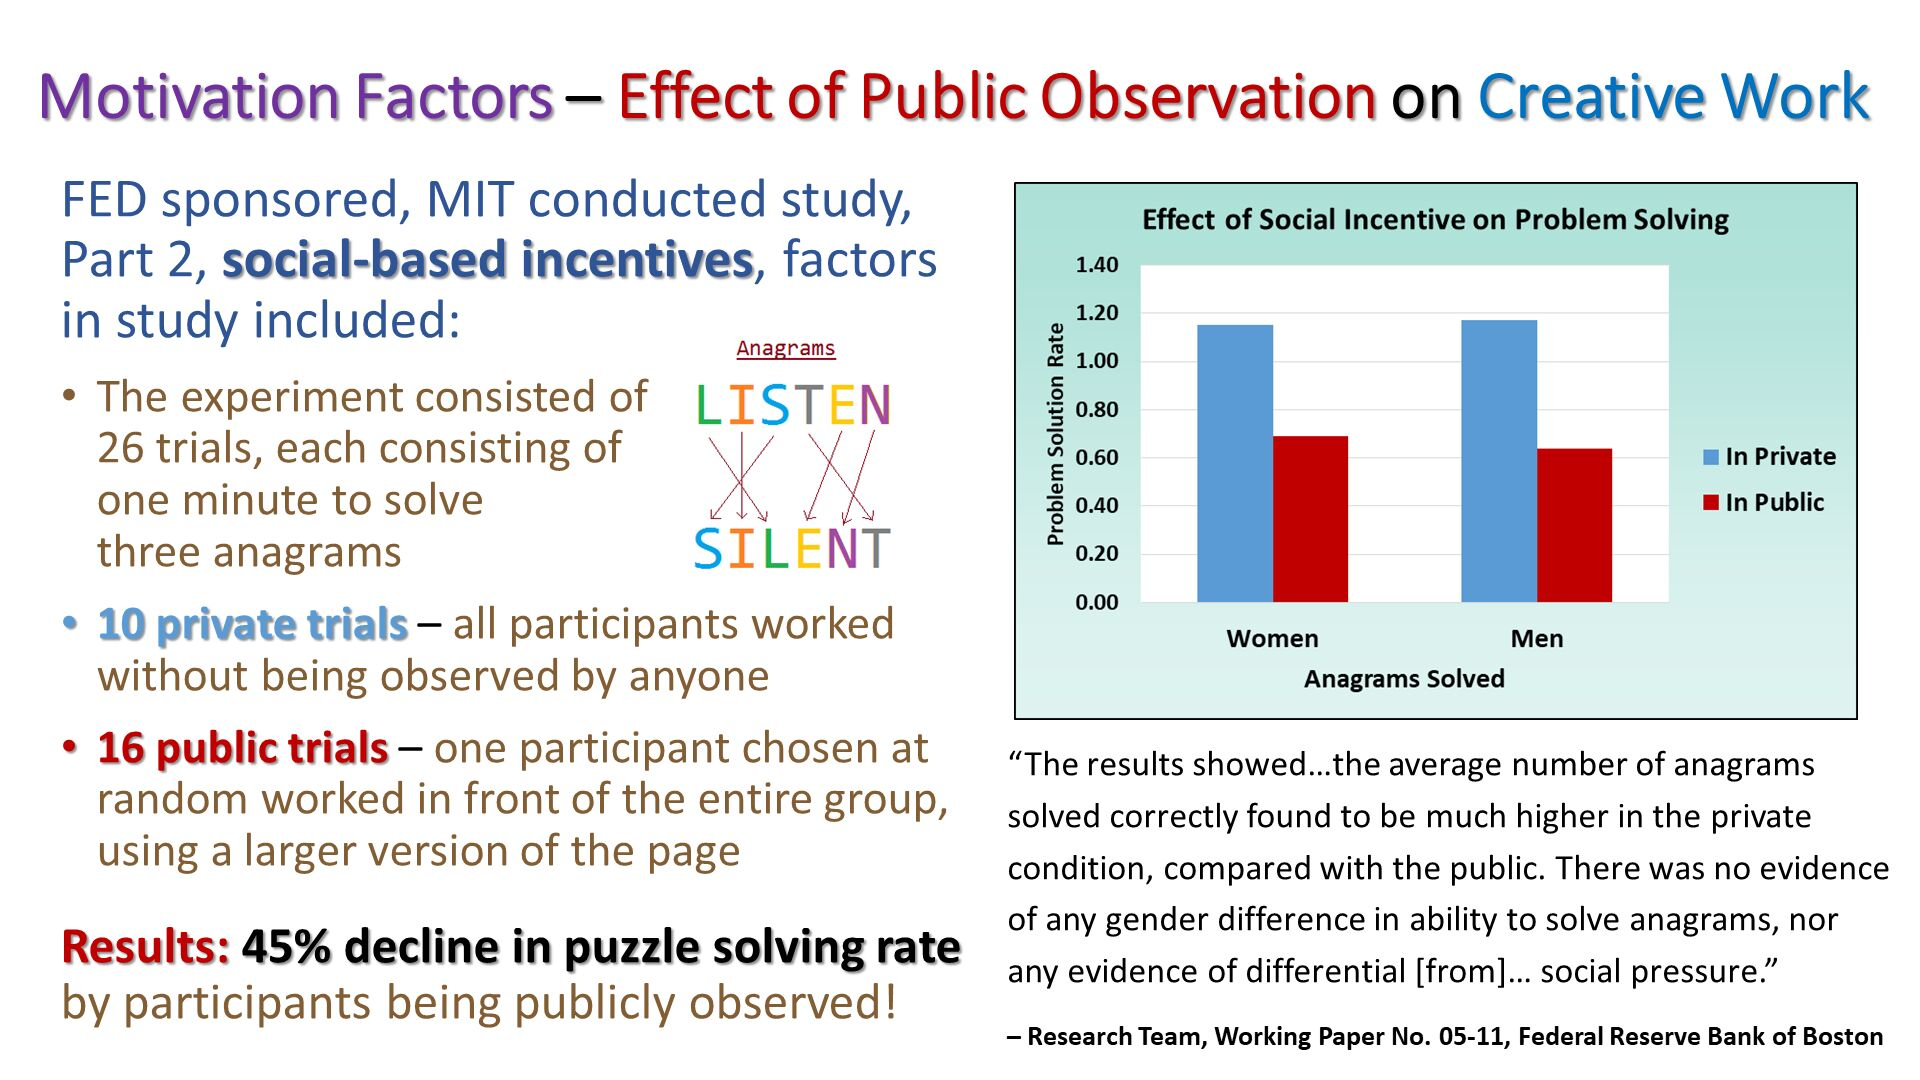 "Motivation Factors – Effect of Public Observation on Creative Work. ""The results showed…the average number of anagrams solved correctly found to be much higher in the private condition, compared with the public. There was no evidence of any gender difference in ability to solve anagrams, nor any evidence of differential [from]… social pressure."" – Research Team, Working Paper No. 05-11, Federal Reserve Bank of Boston. FED sponsored, MIT conducted study, Part 2, social-based incentives, factors in study included: The experiment consisted of 26 trials, each consisting of one minute to solve three anagrams 10 private trials – all participants worked without being observed by anyone 16 public trials – one participant chosen at random worked in front of the entire group, using a larger version of the page Results: 45% decline in puzzle solving rate by participants being publicly observed!."